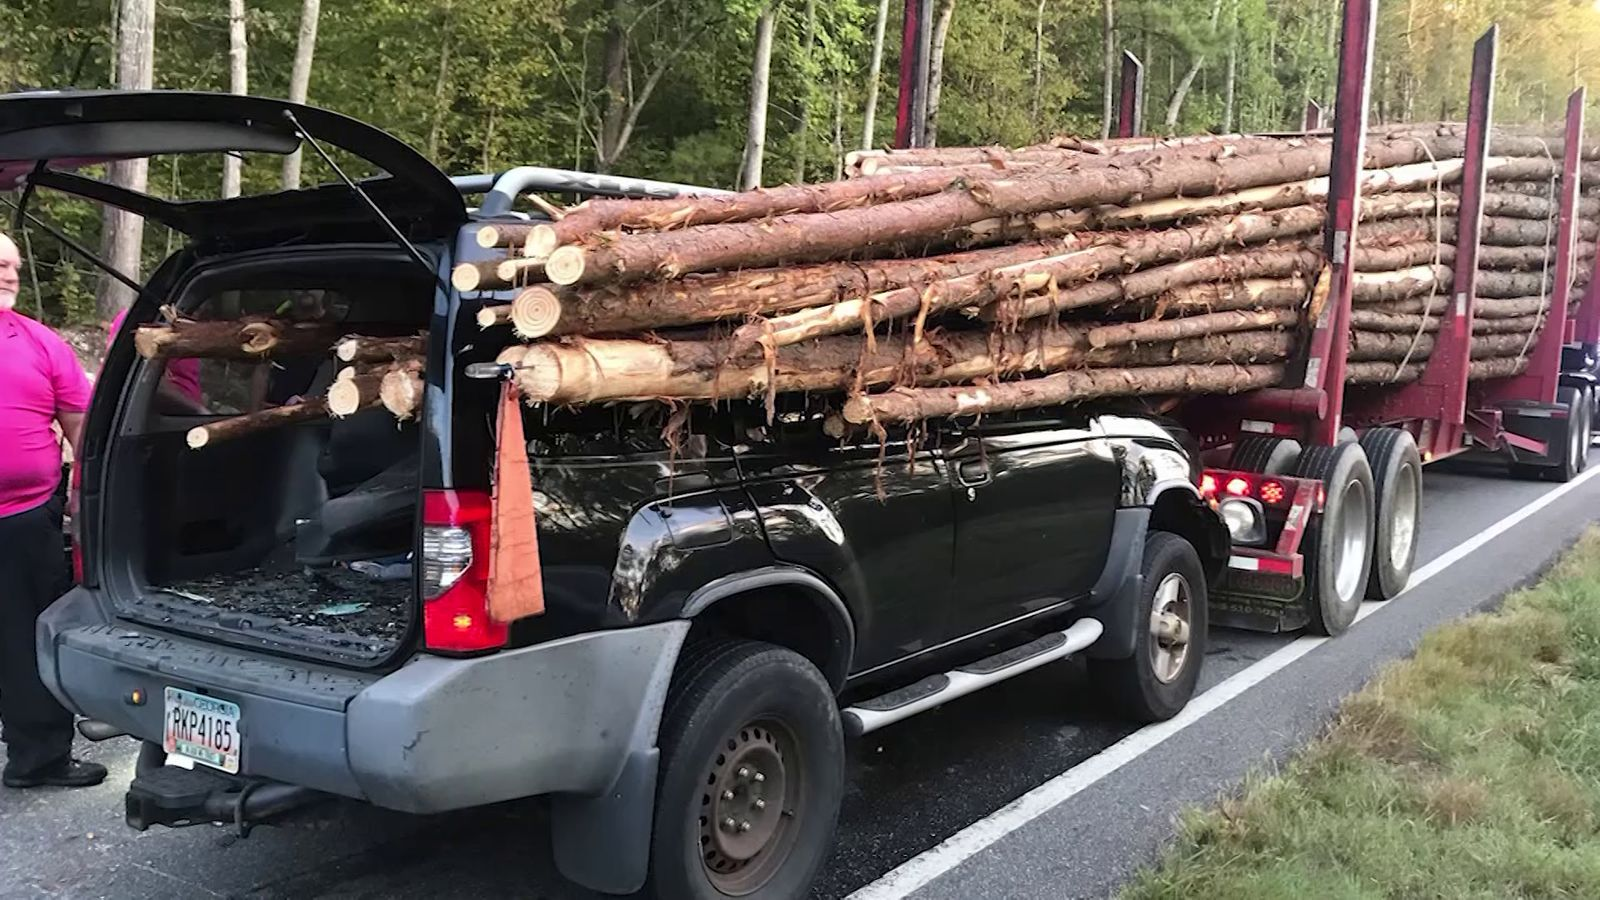 Man survives wreck with log truck after car impaled by logs. (Whitfield County Fire Department)